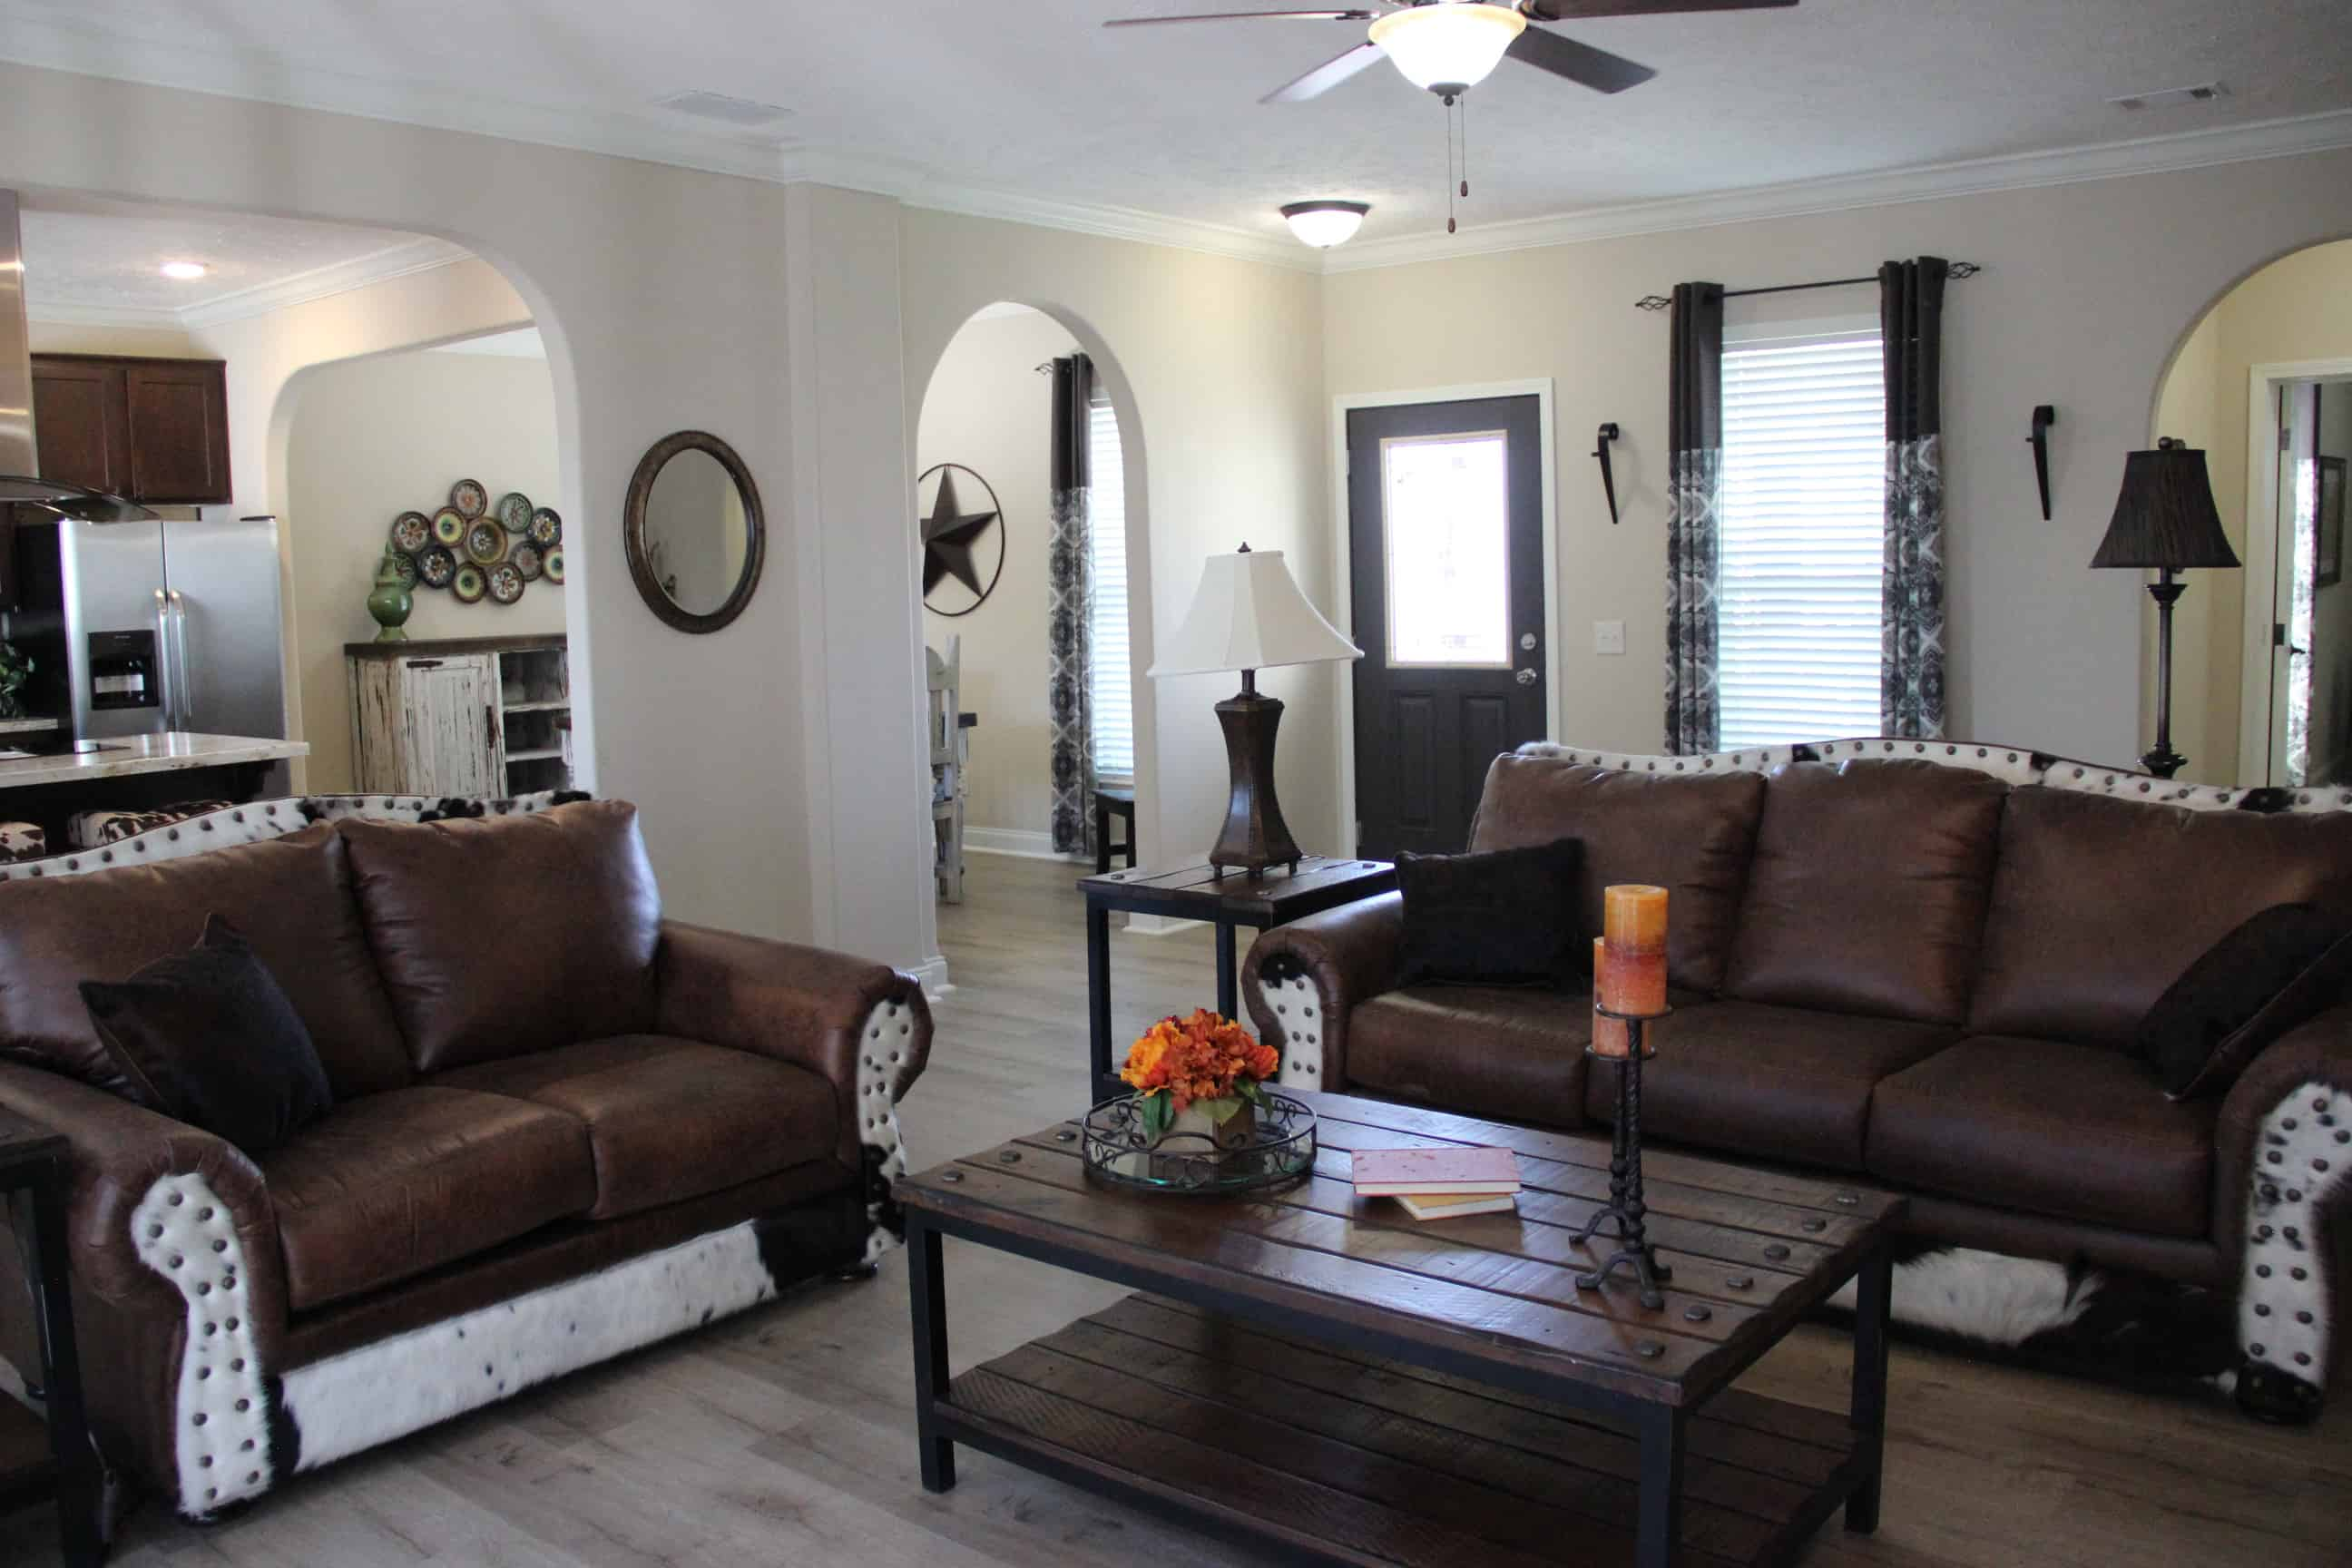 Furnished living room from house model Brian Ritz